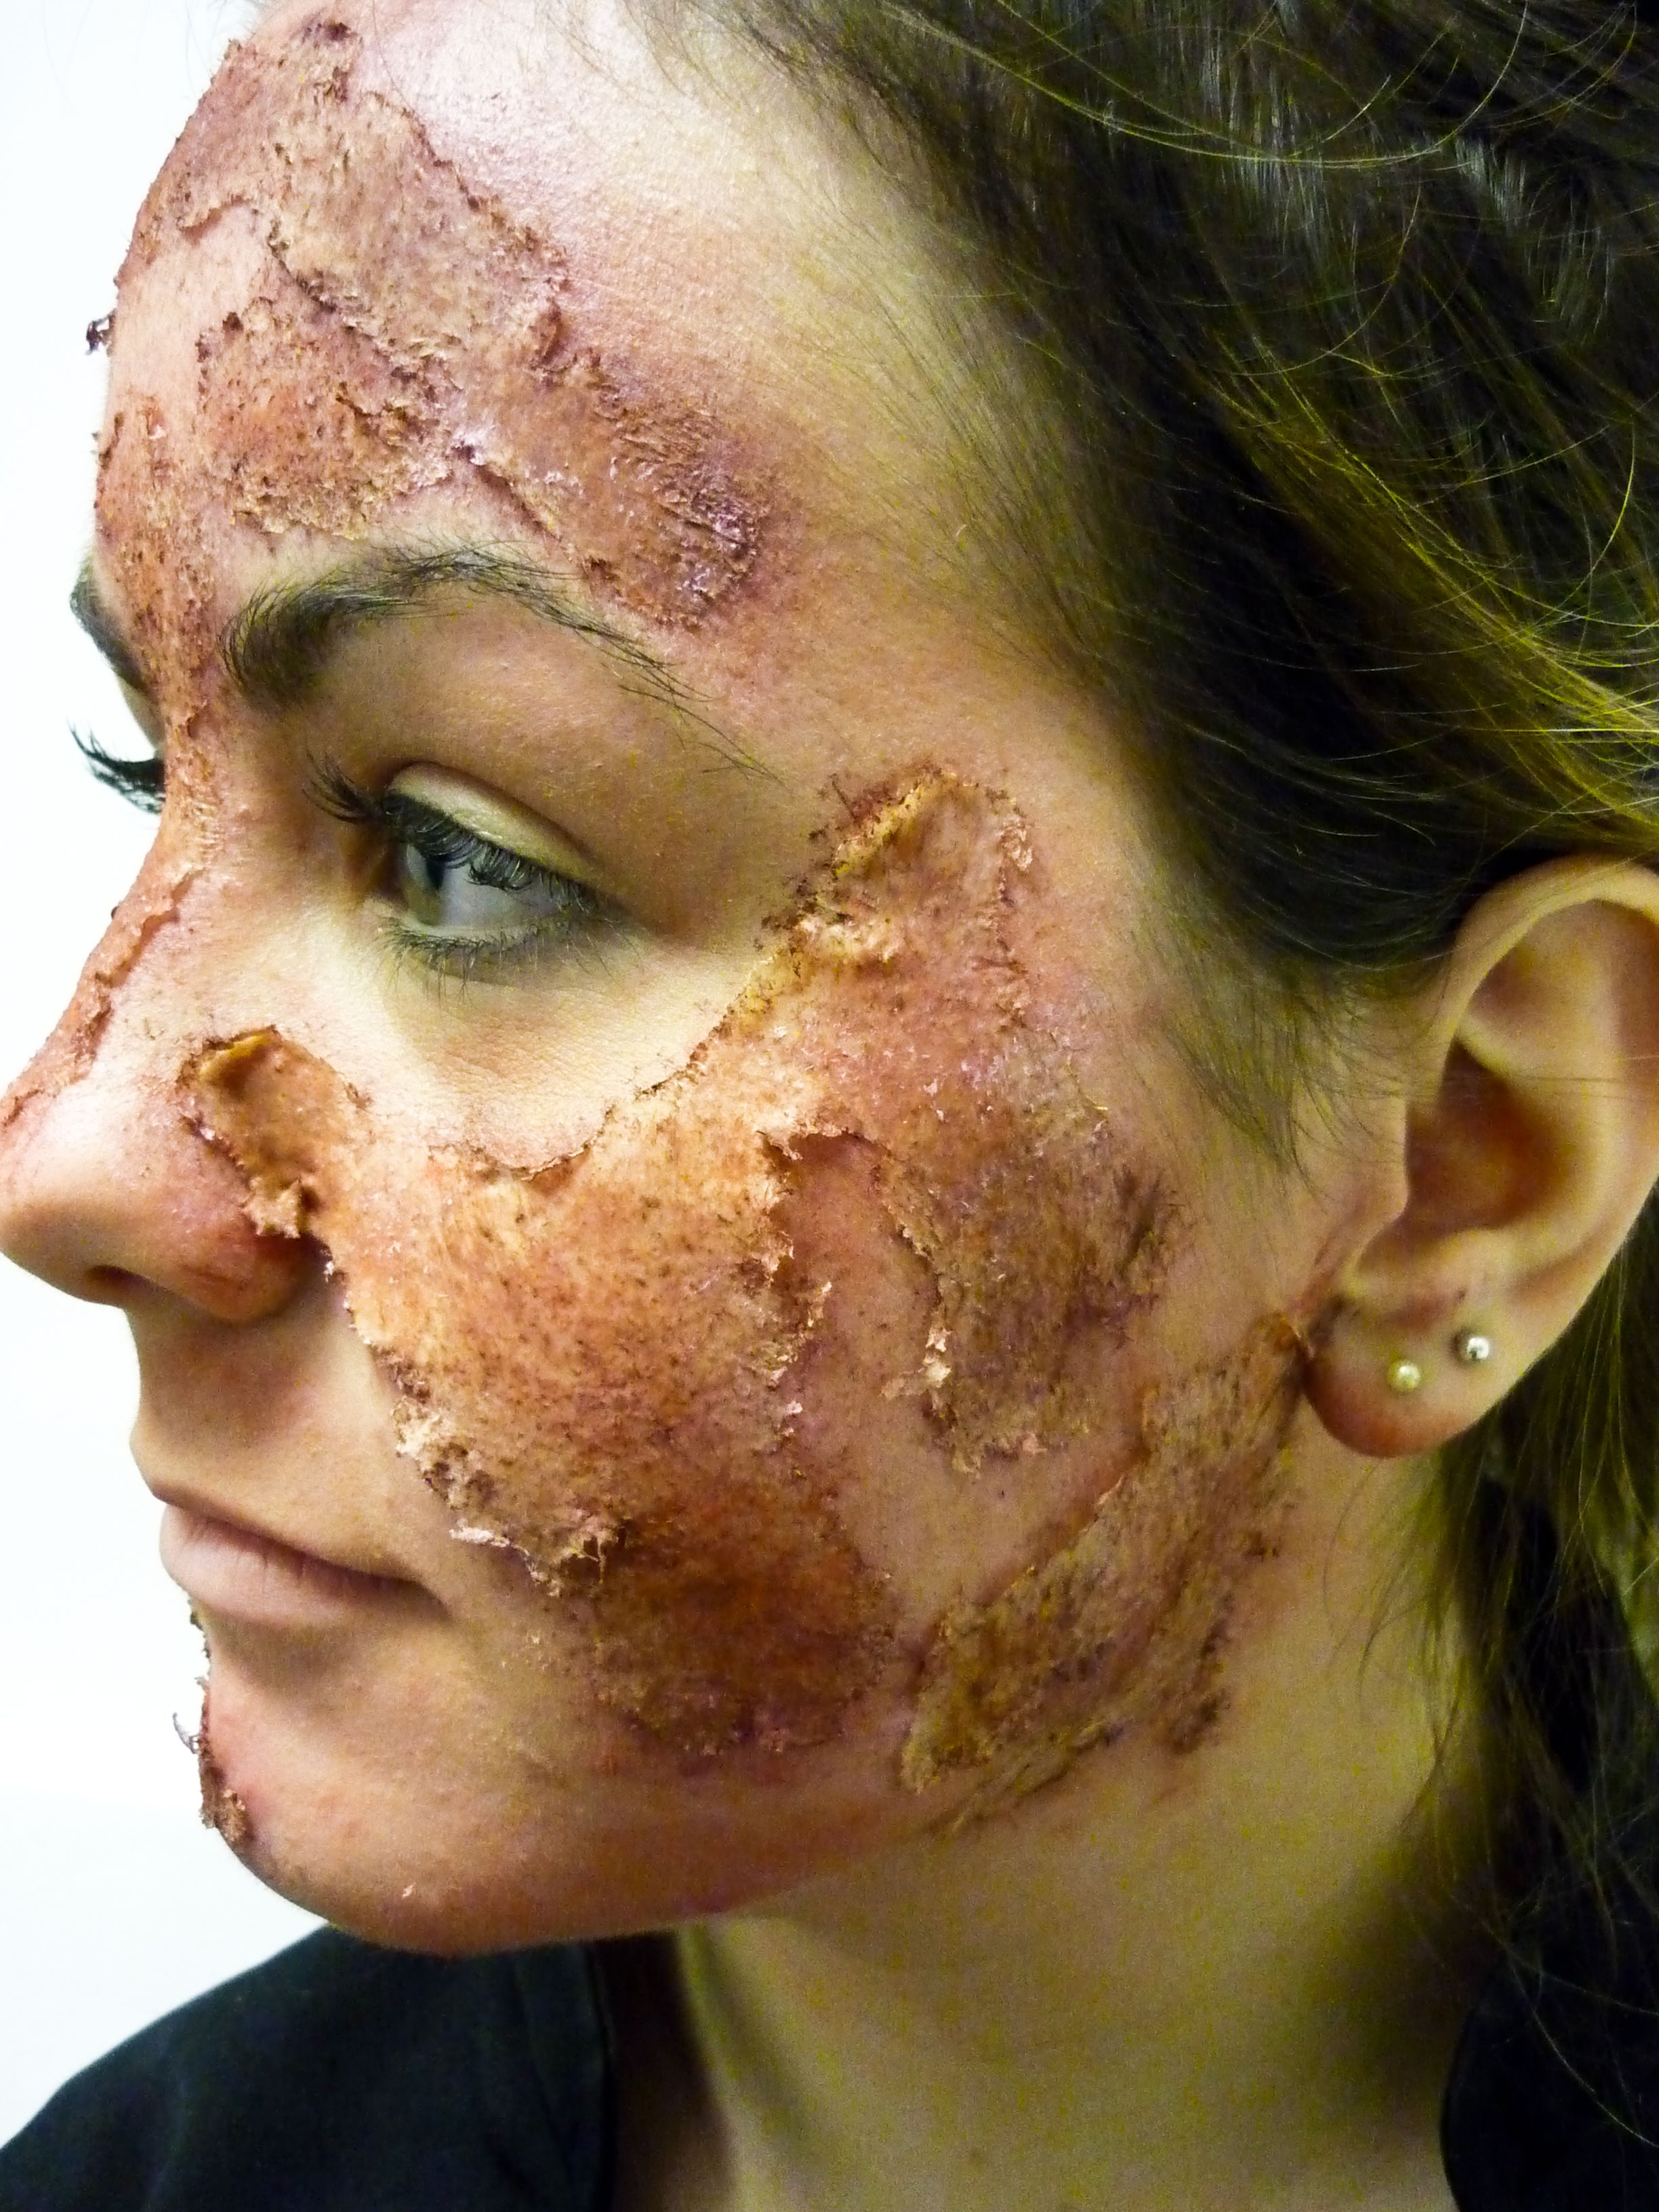 chemical burn makeup sfx | Moulage/Special FX | Pinterest ...